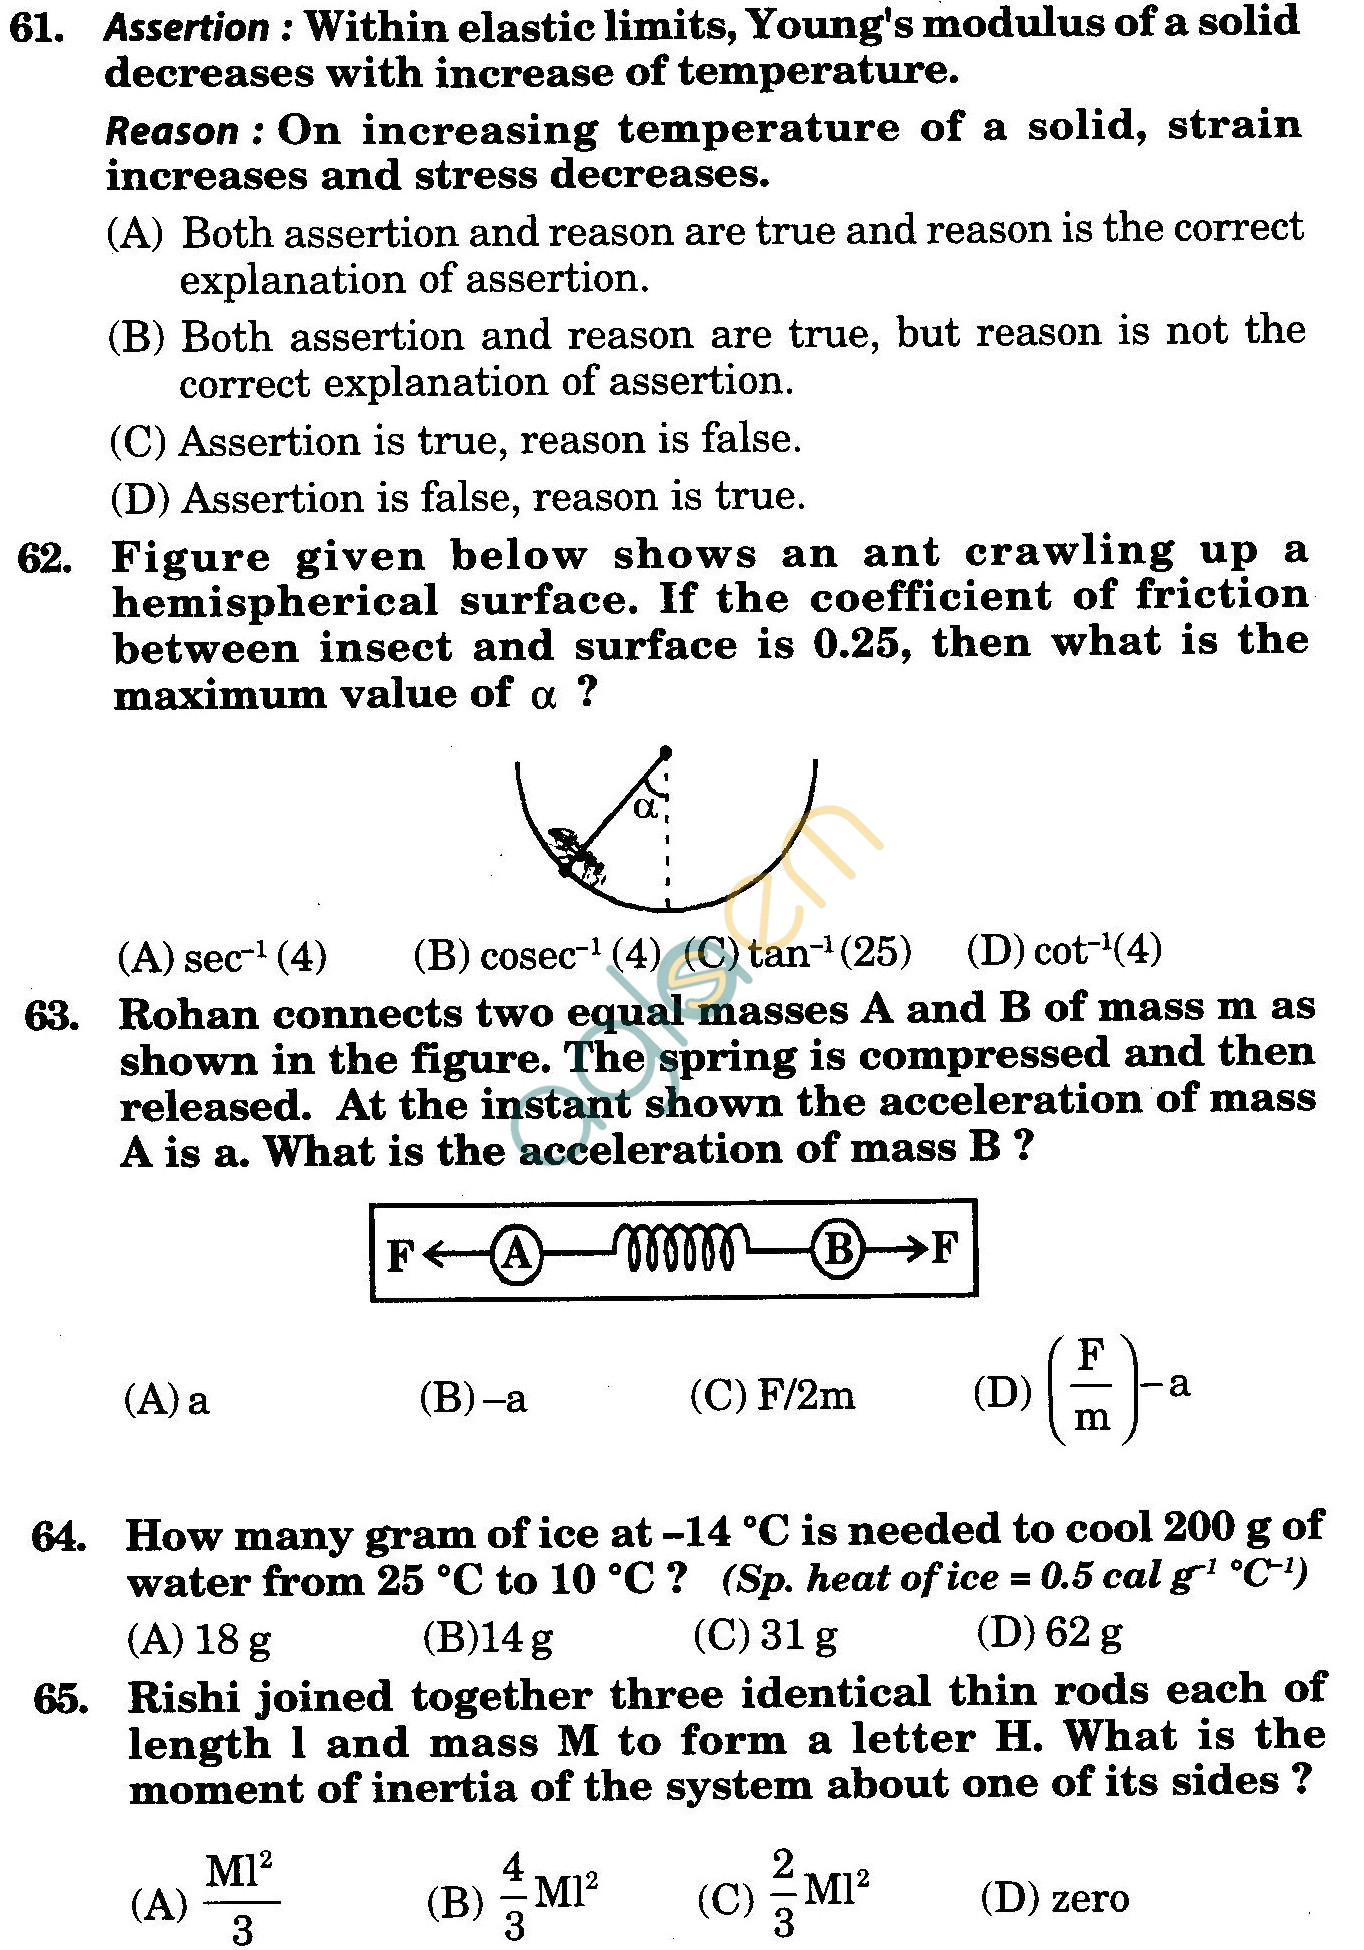 NSTSE 2010 Class XI PCB Question Paper with Answers - Physics